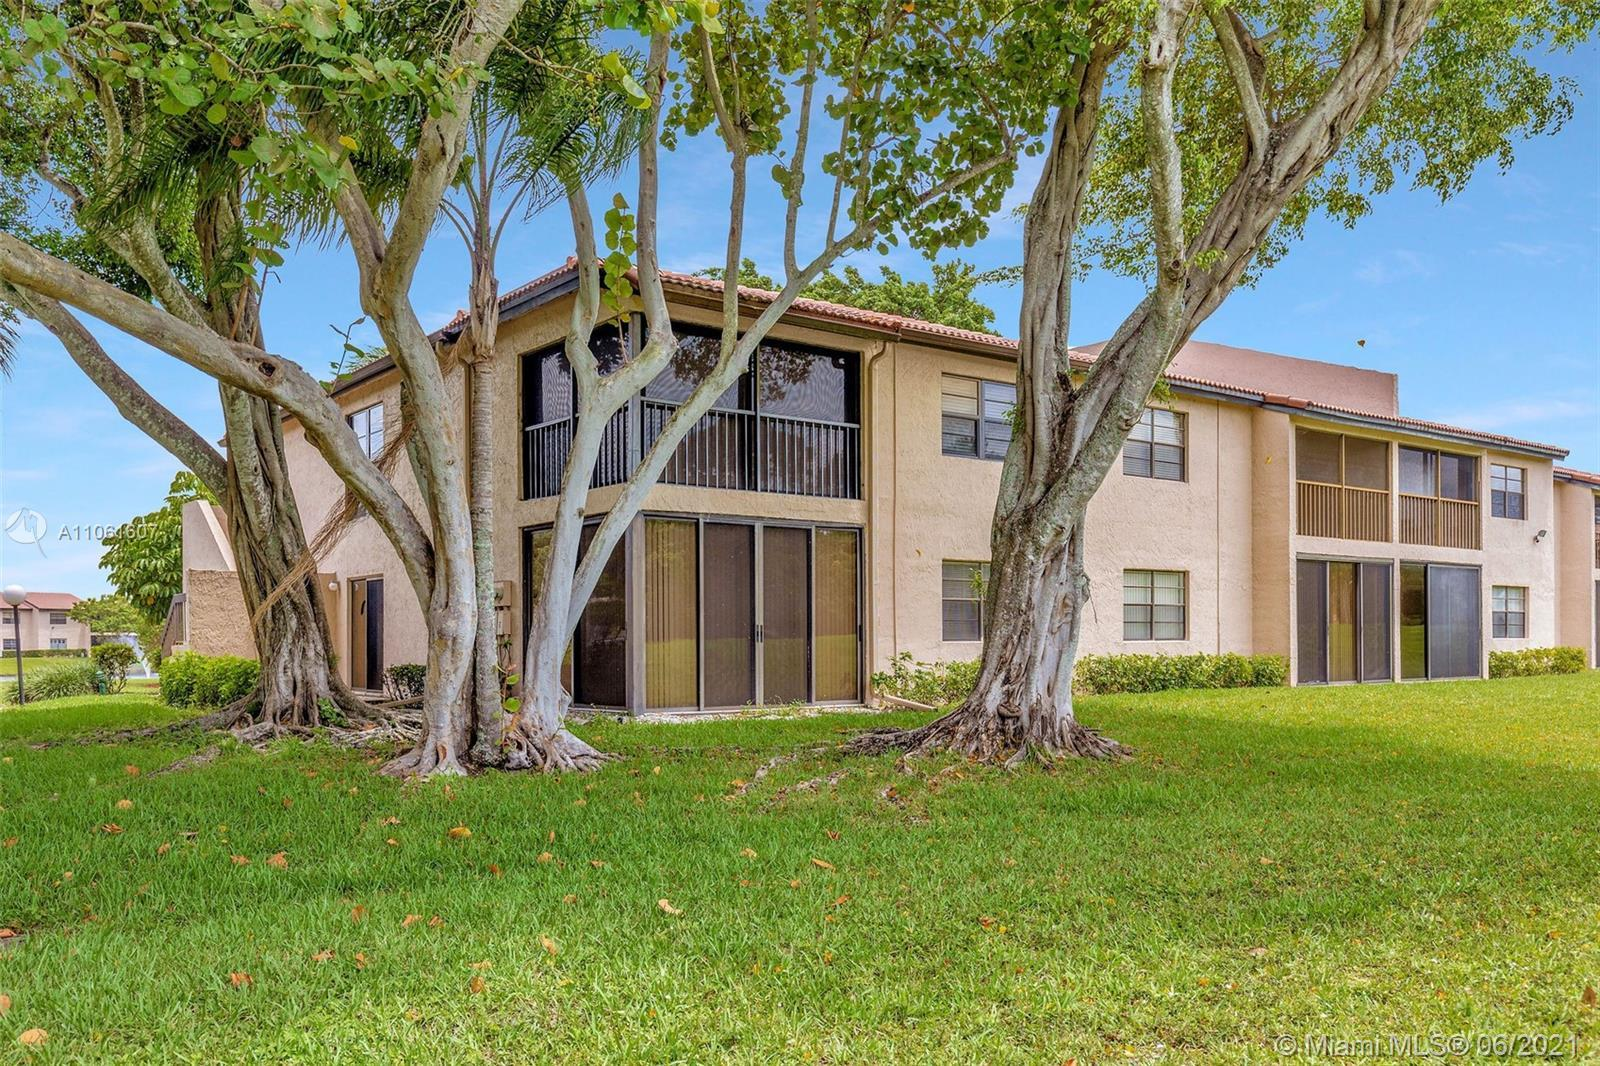 OPEN AND BRIGHT 1ST FLOOR CORNER UNIT IN THE DESIRED 55+ PINES OF BOCA LAGO, 2 BEDS, 2 BATHS WITH PL